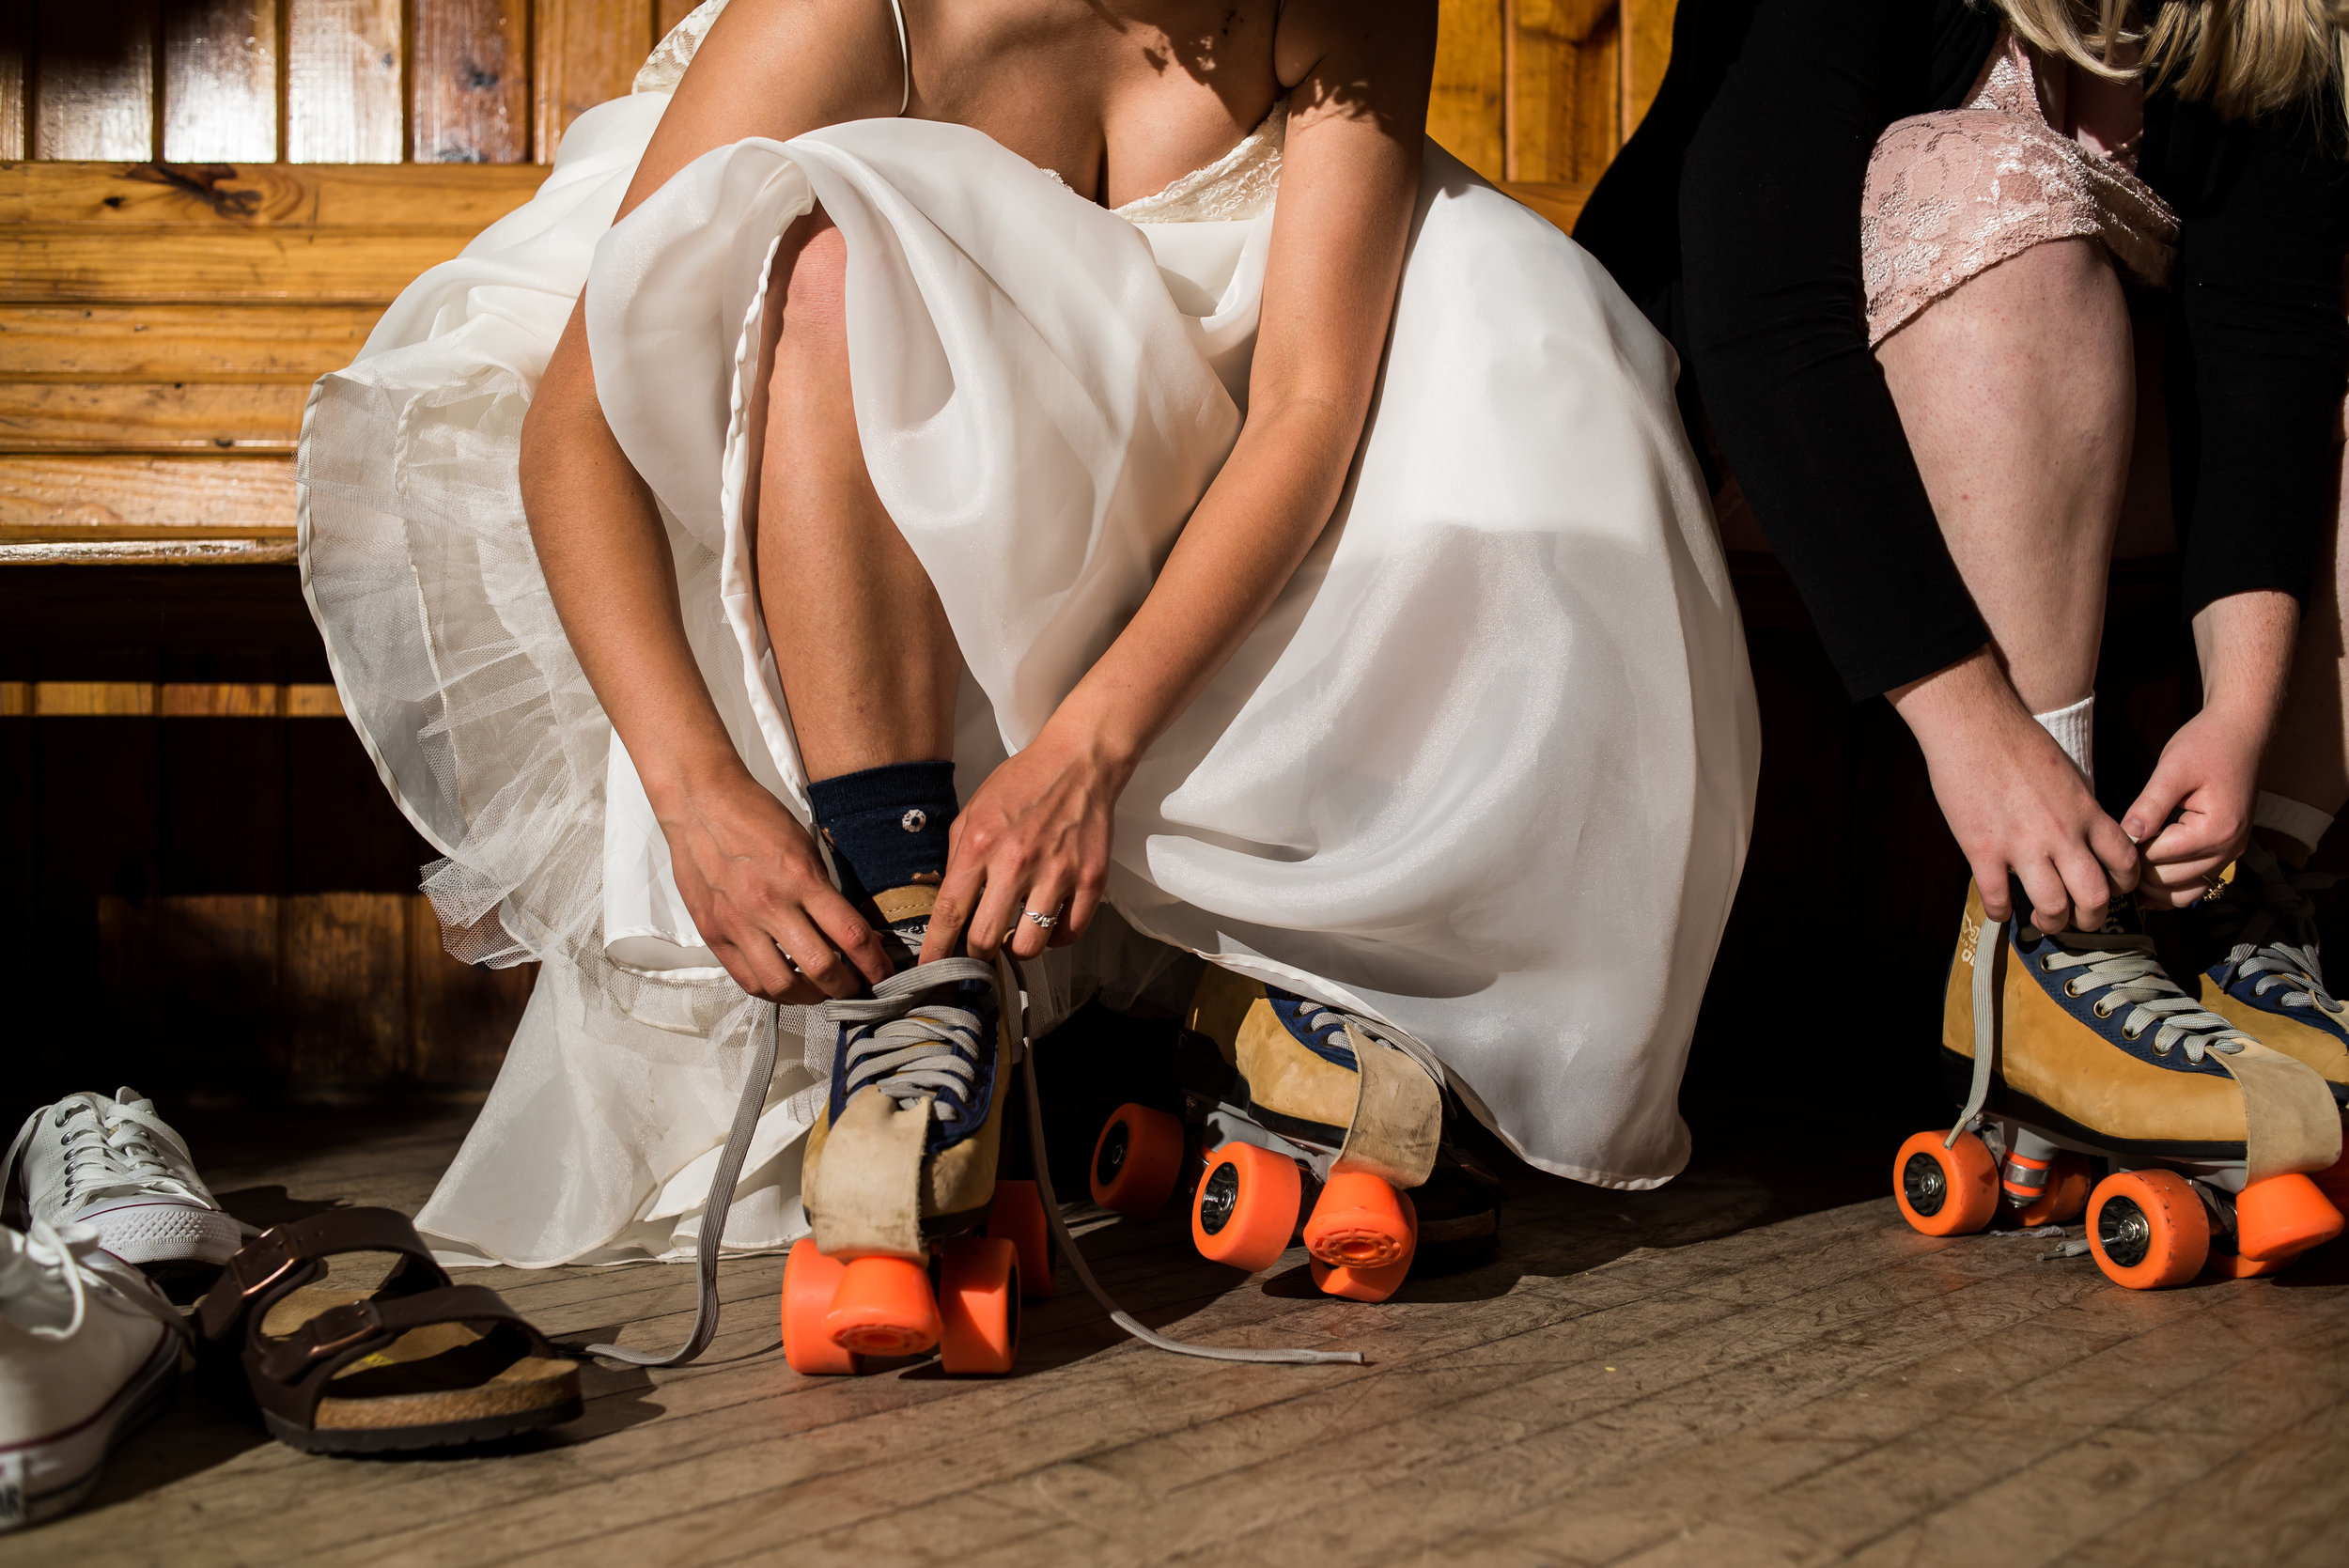 roller-skates-wedding-iowa-wedding-photographer.jpg